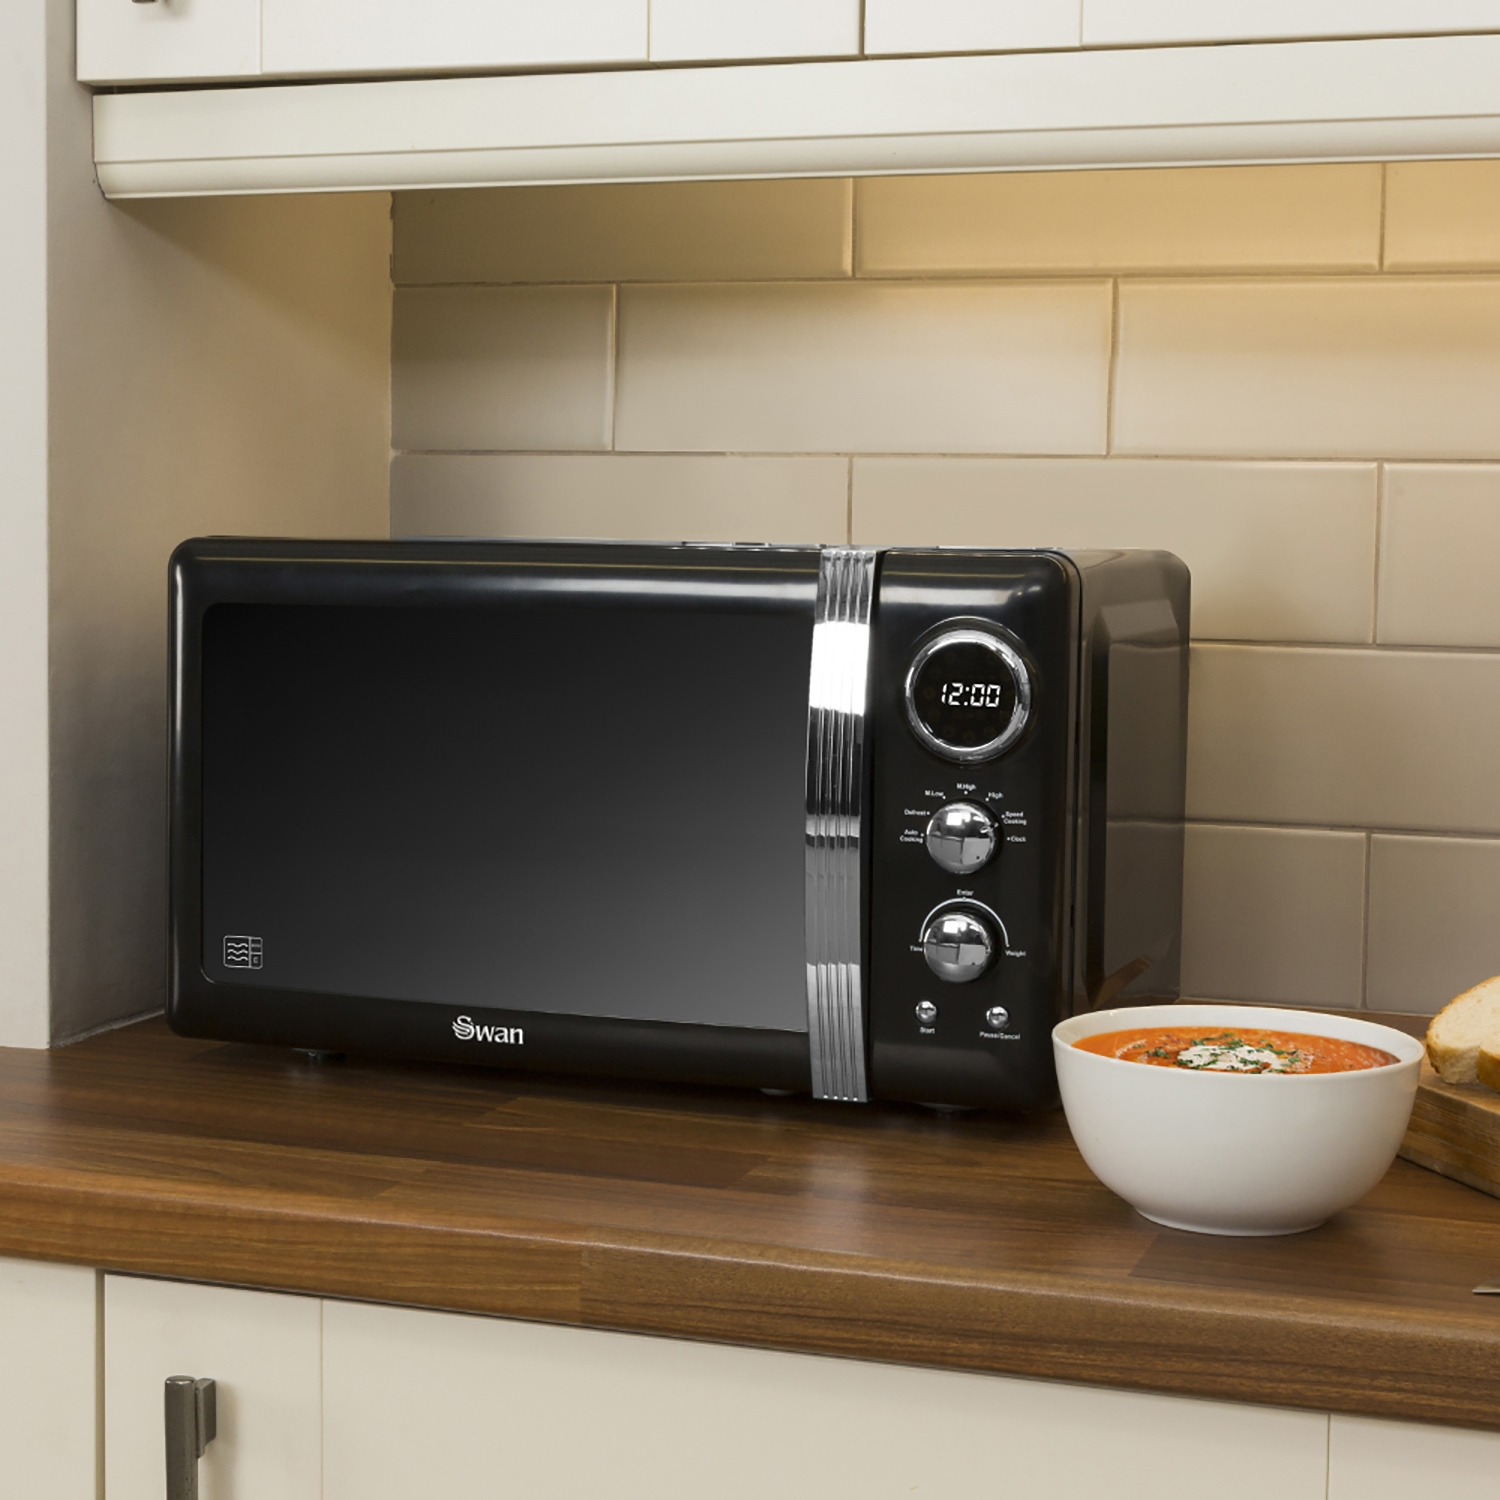 Image of Swan Retro Digital Microwave 20 Litre, Black